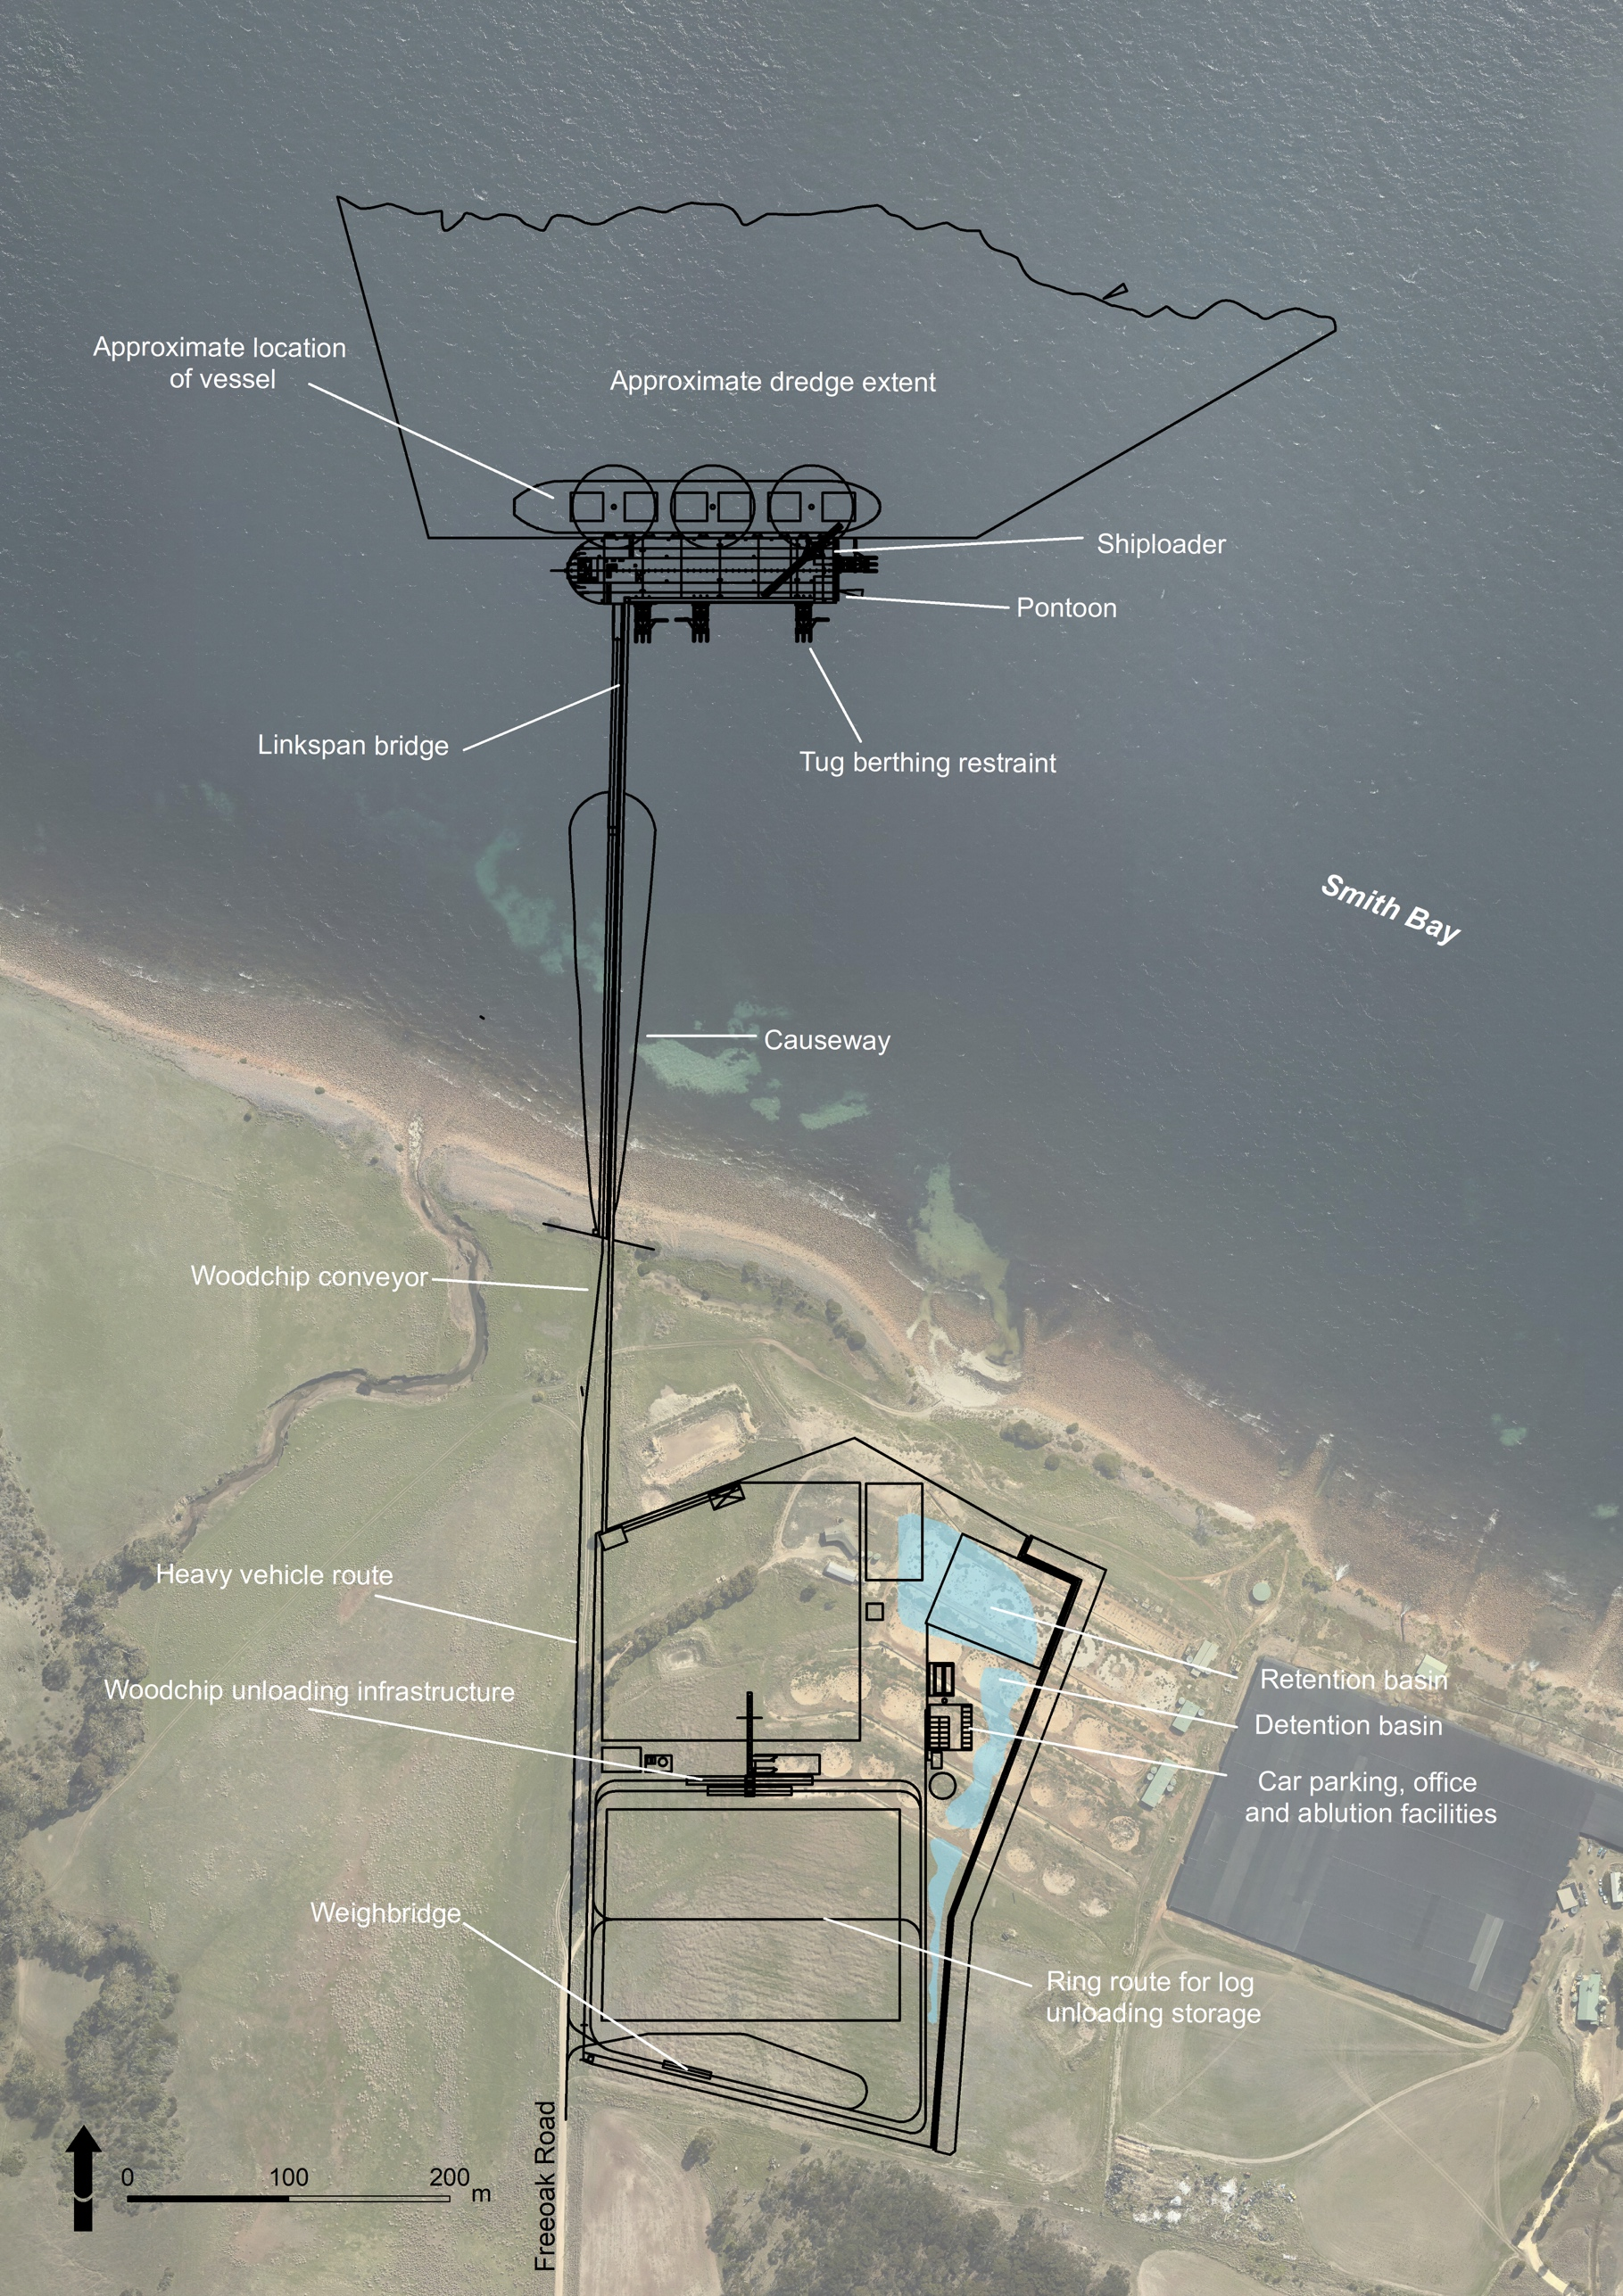 Public Consultation Opens For The Smith Bay Wharf EIS